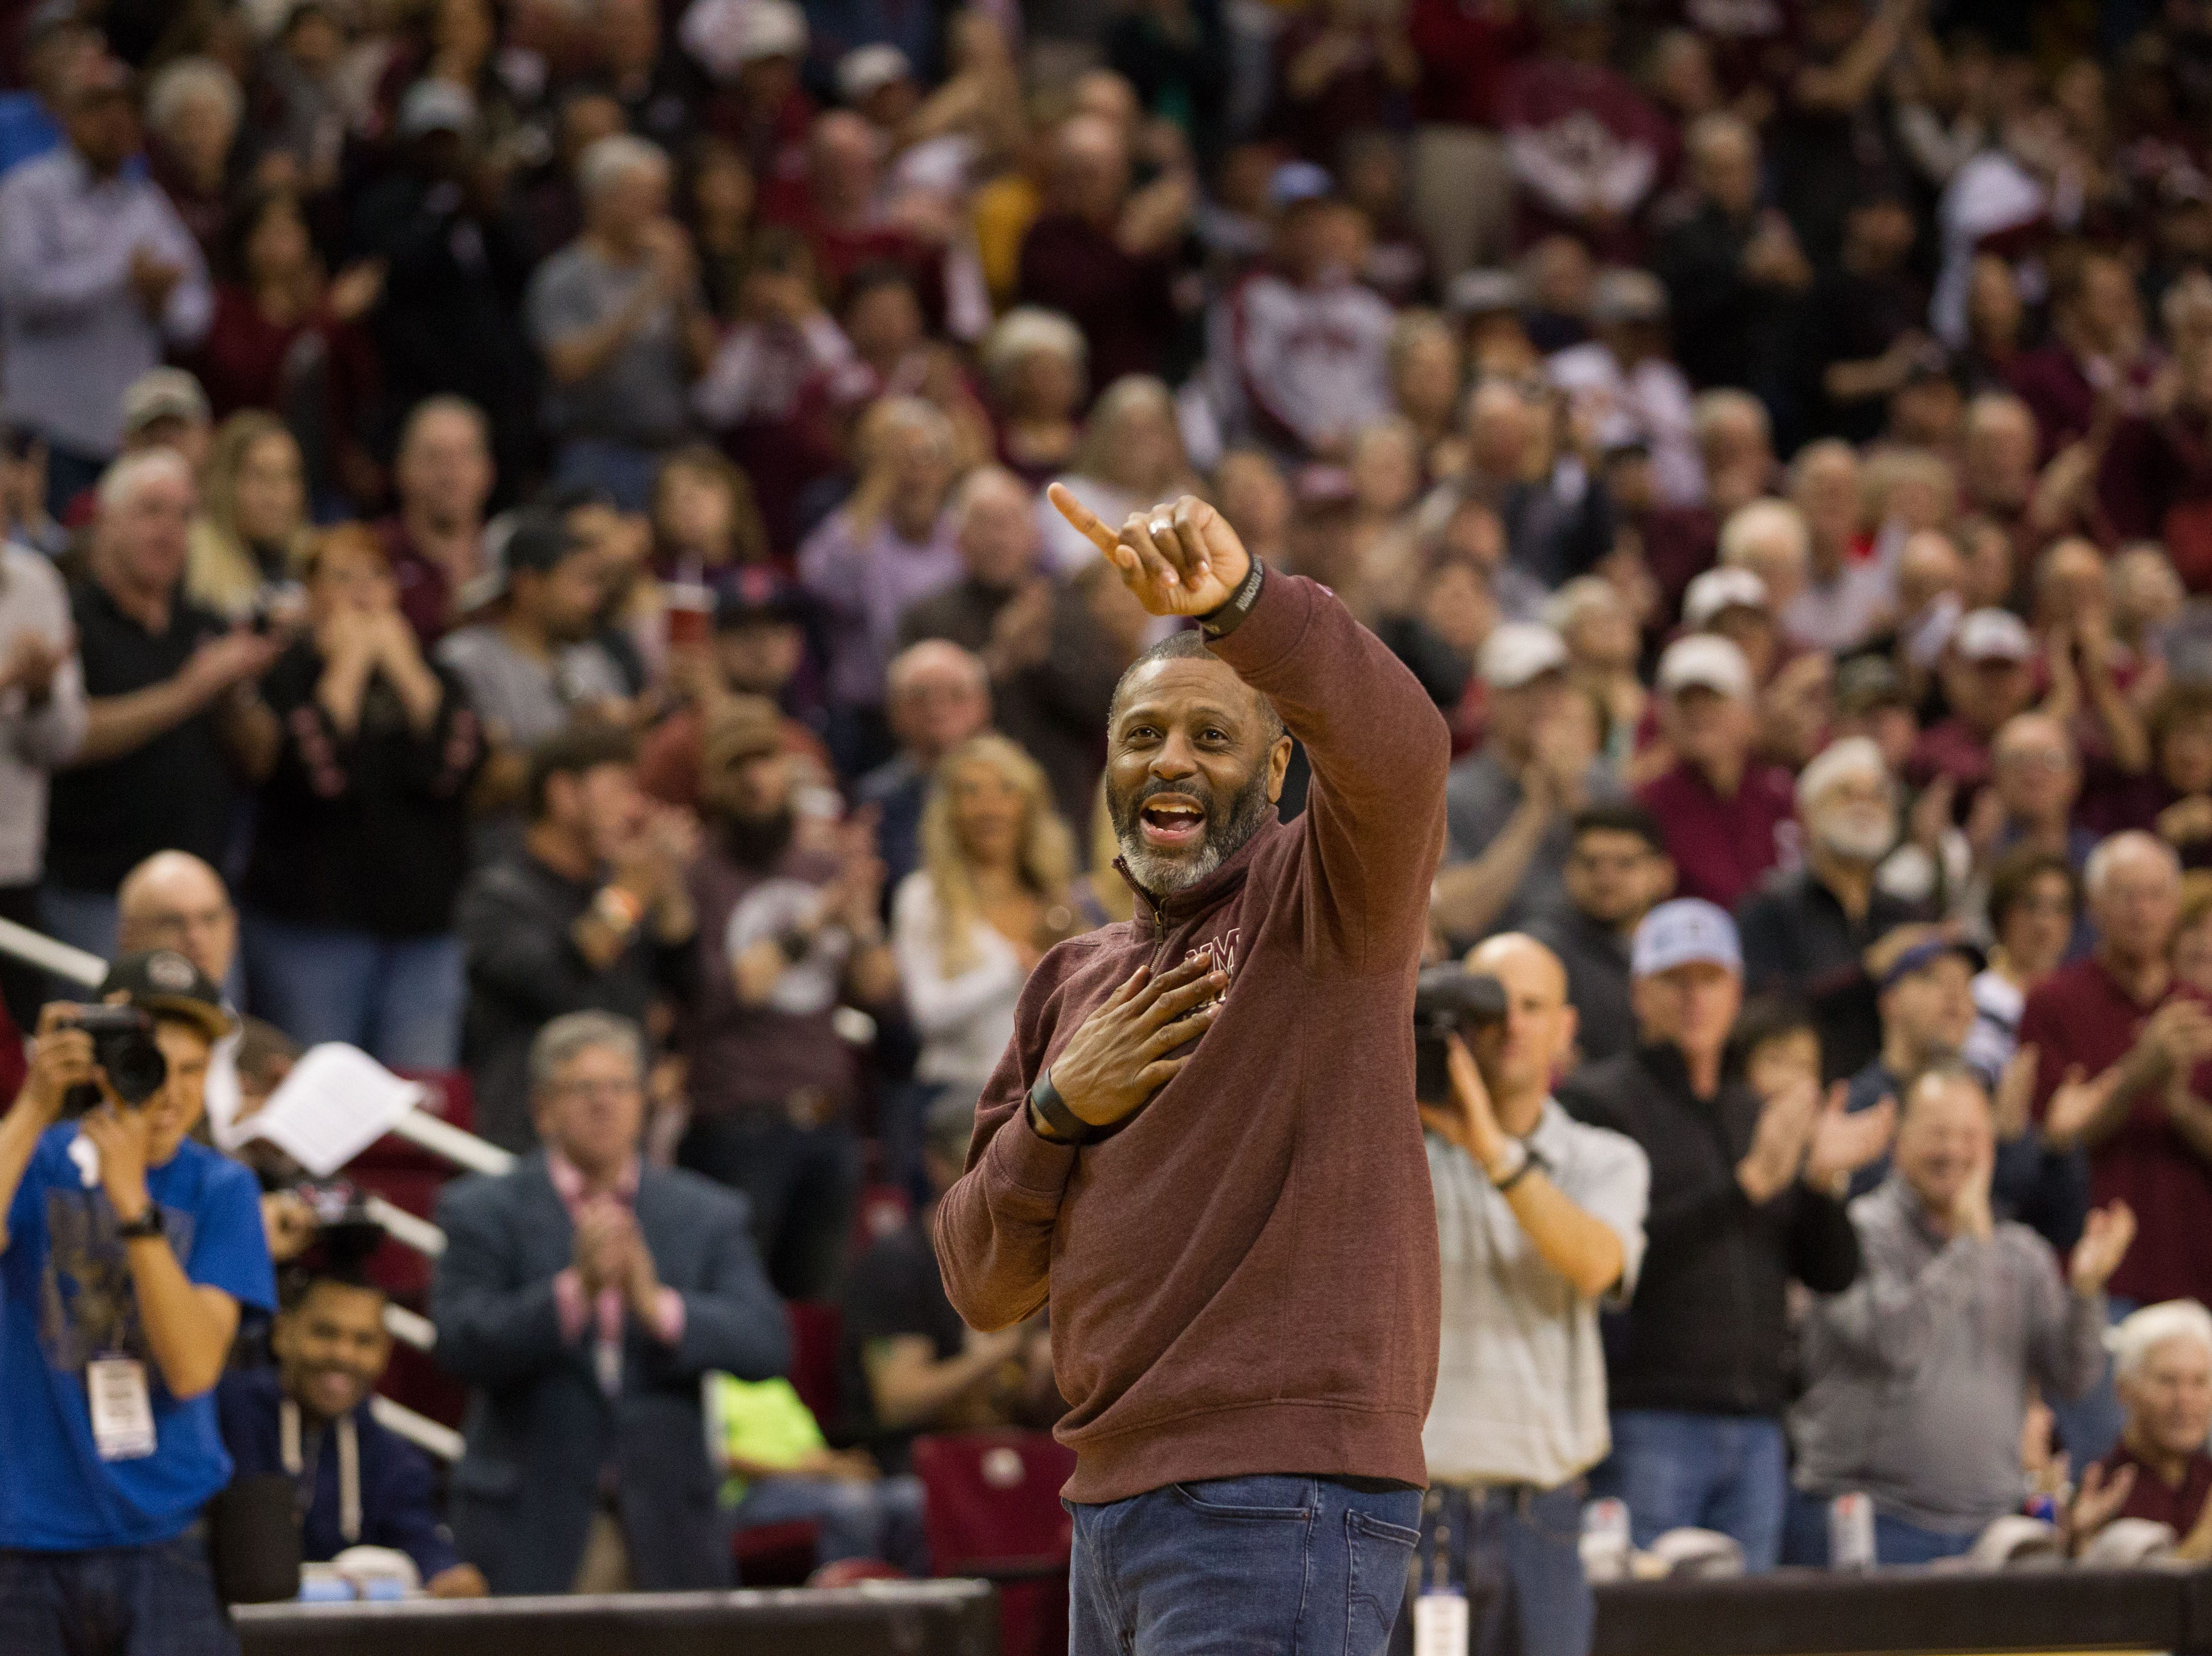 Former NMSU Aggie and NBA player, Randy Brown in town for the game. The NMSU Aggies hosted UT Rio Grande Valley on February 23, 2019.